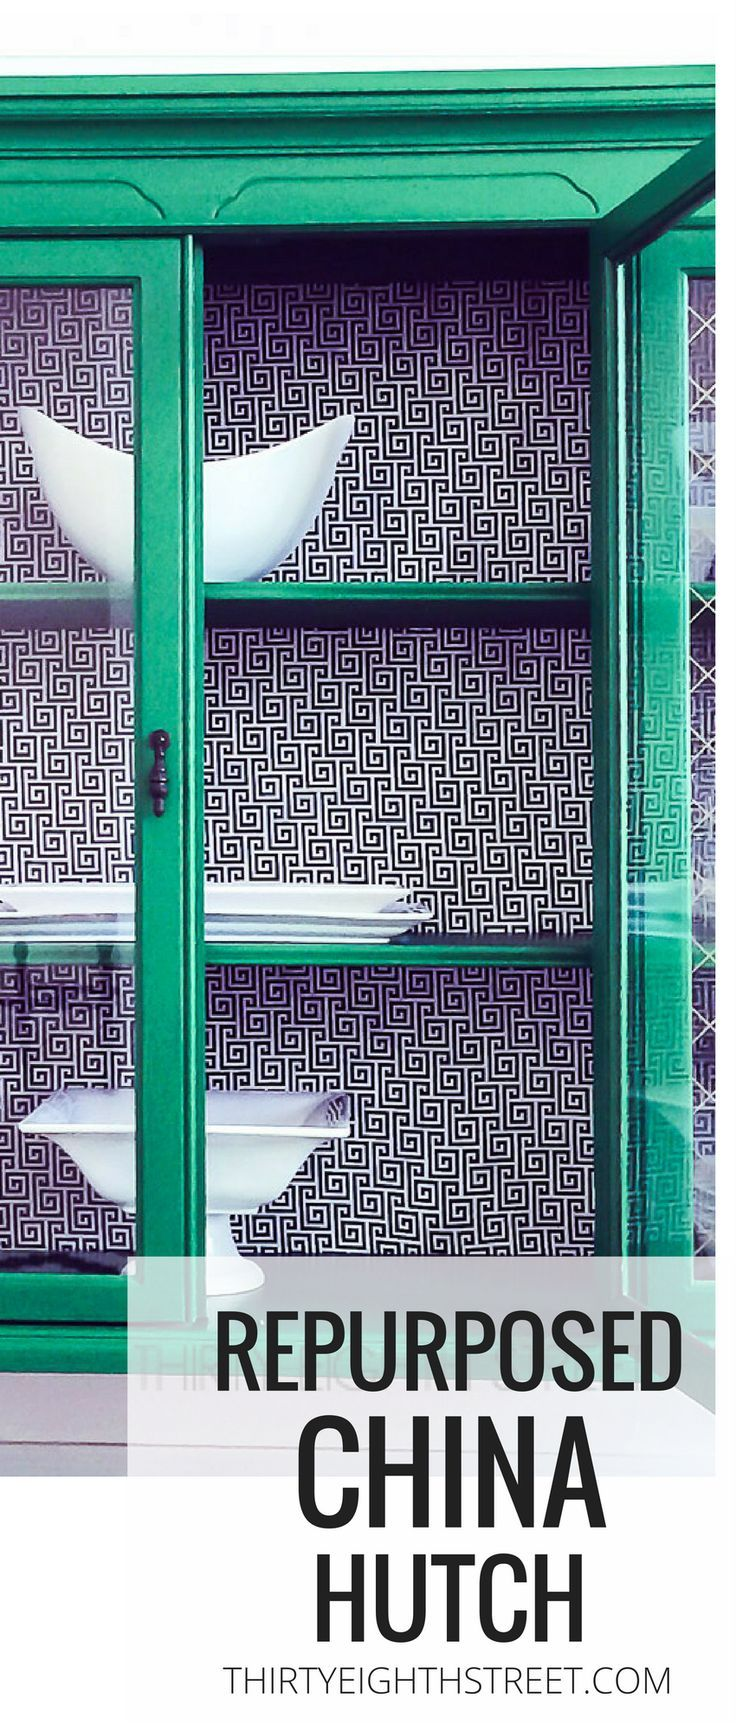 Diy Furniture Repurposed And Painted China Hutch Cabinet Green Painted China Hutch With Modge Diyall Net Home Of Diy Craft Ideas Inspiration Diy Projects Craft Ideas How